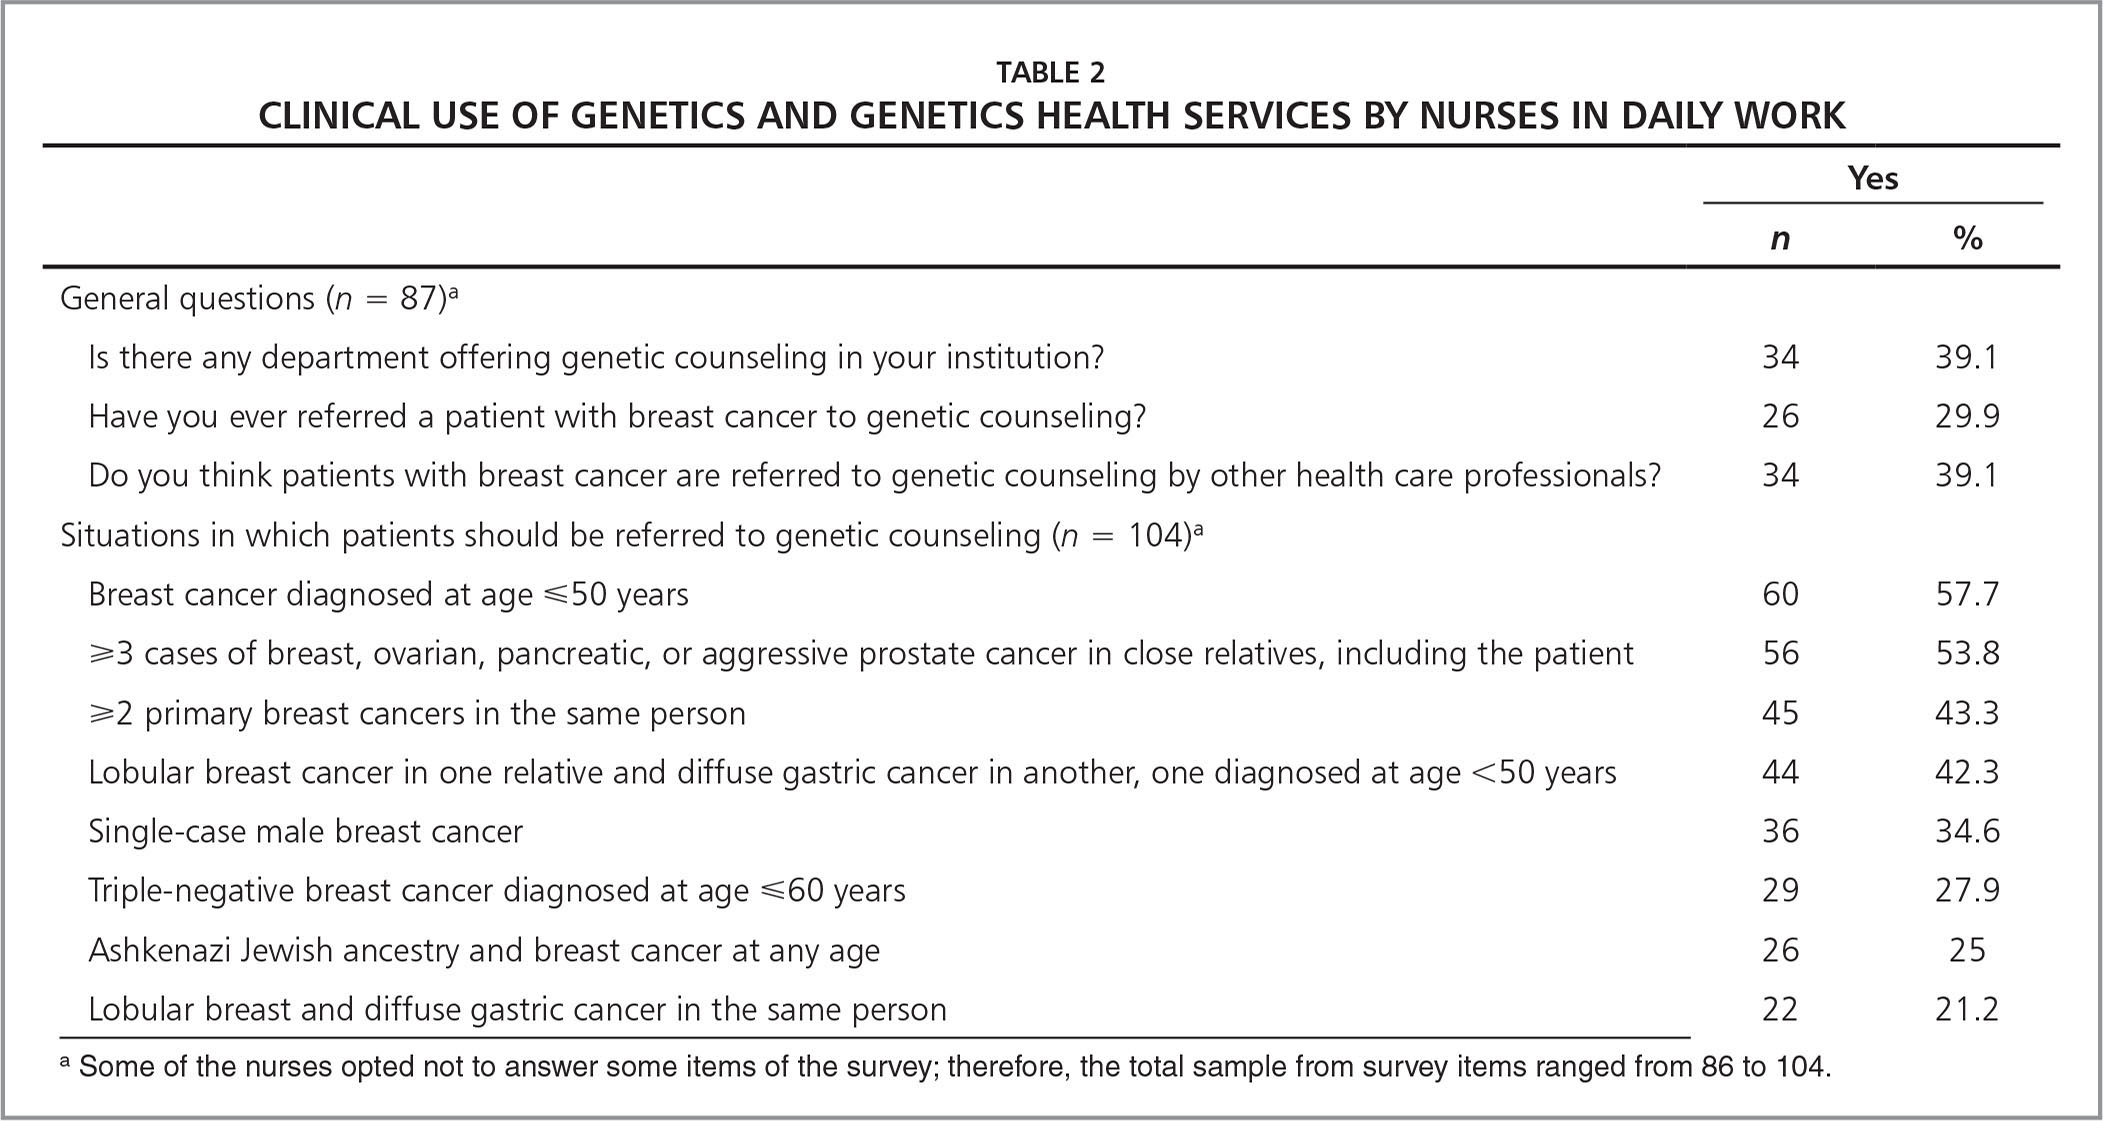 Clinical Use of Genetics and Genetics Health Services by Nurses in Daily Work